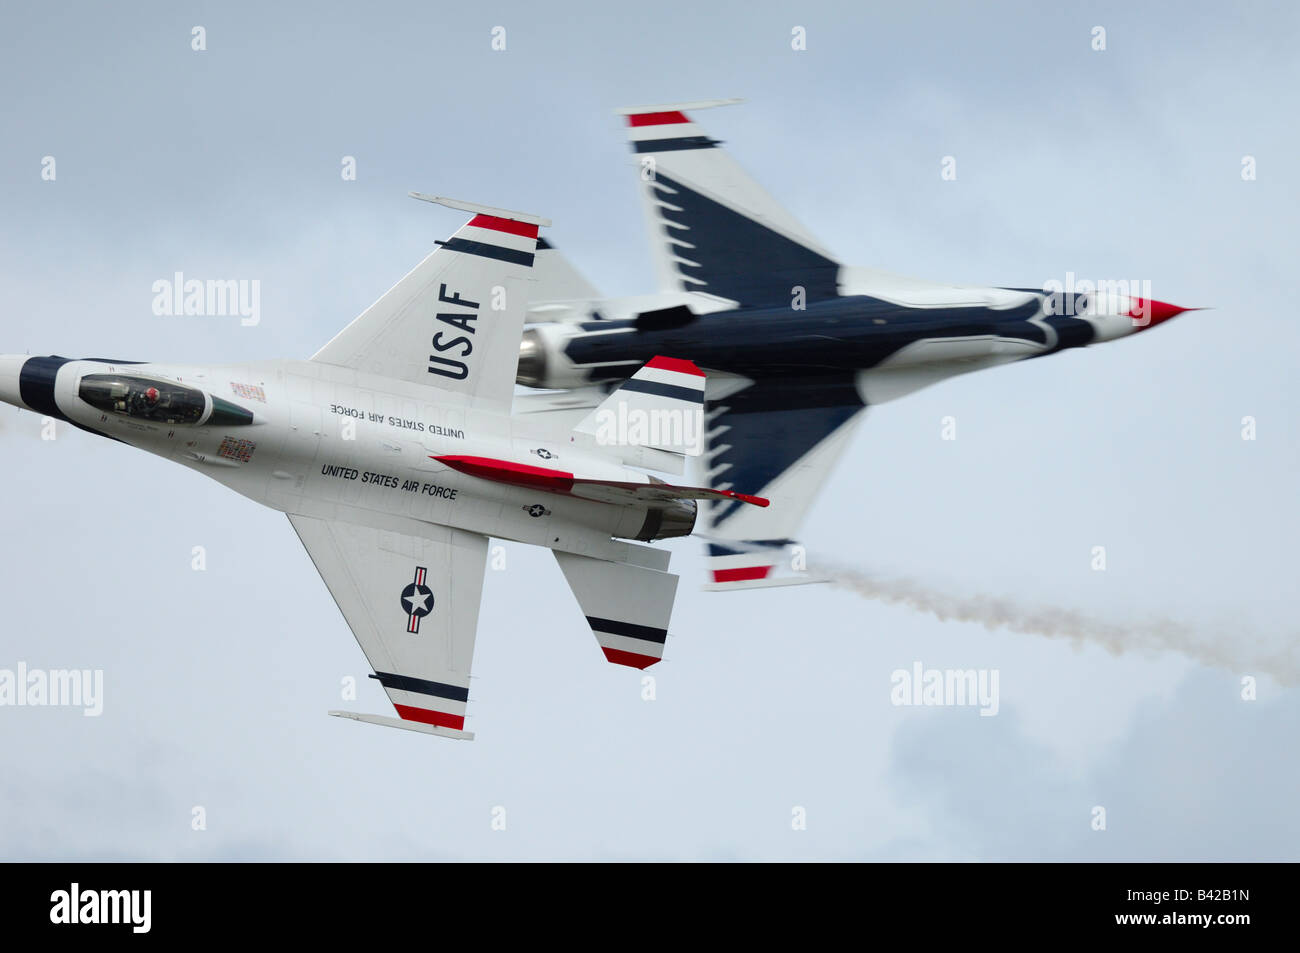 2 solos F-16 jet fighters passing each other - aerobatic team Thunderbirds in flight at Elmendorf Air Force Base - Stock Image